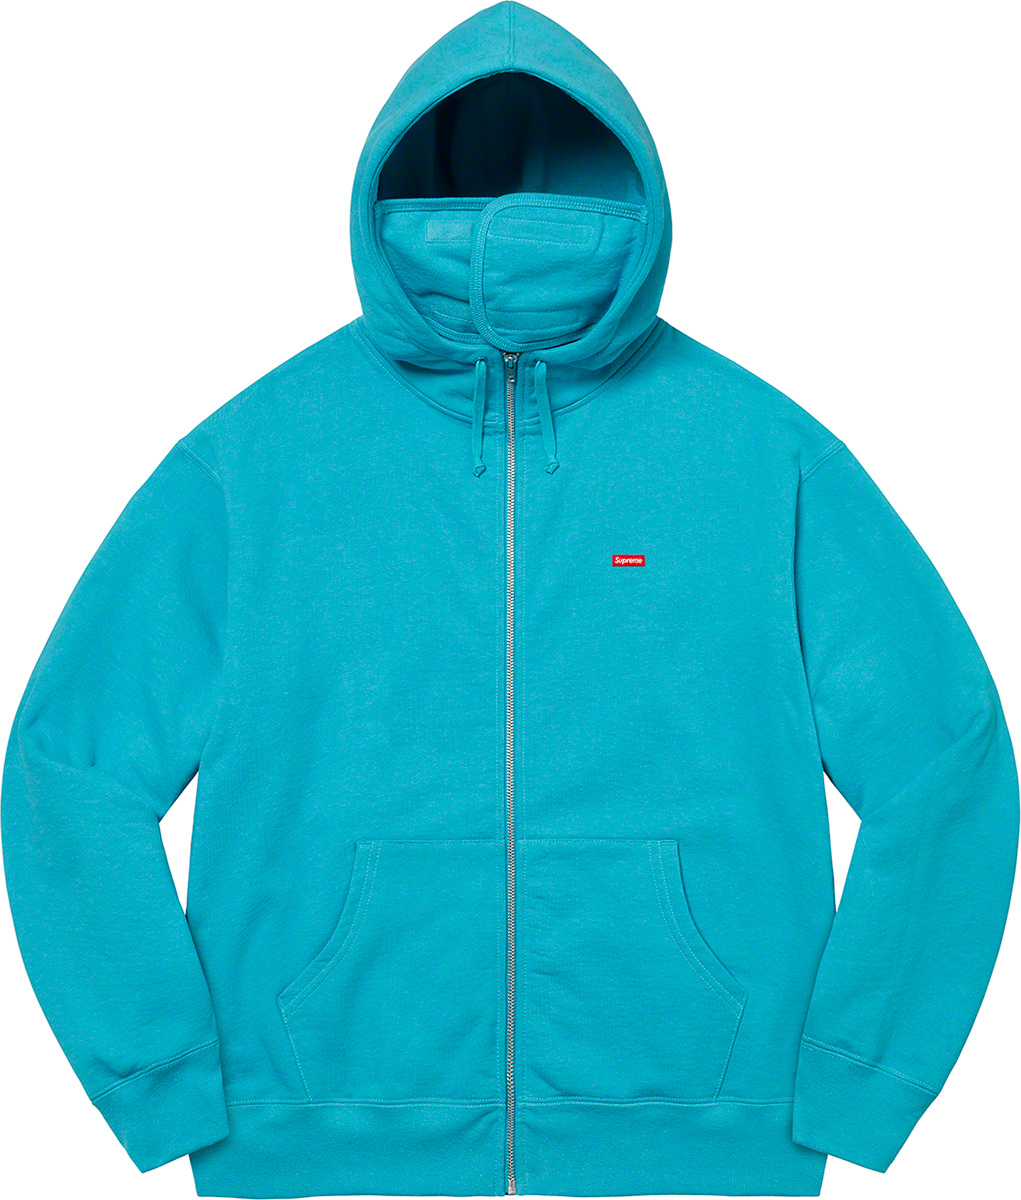 supreme-21aw-21fw-small-box-facemask-zip-up-hooded-sweatshirt